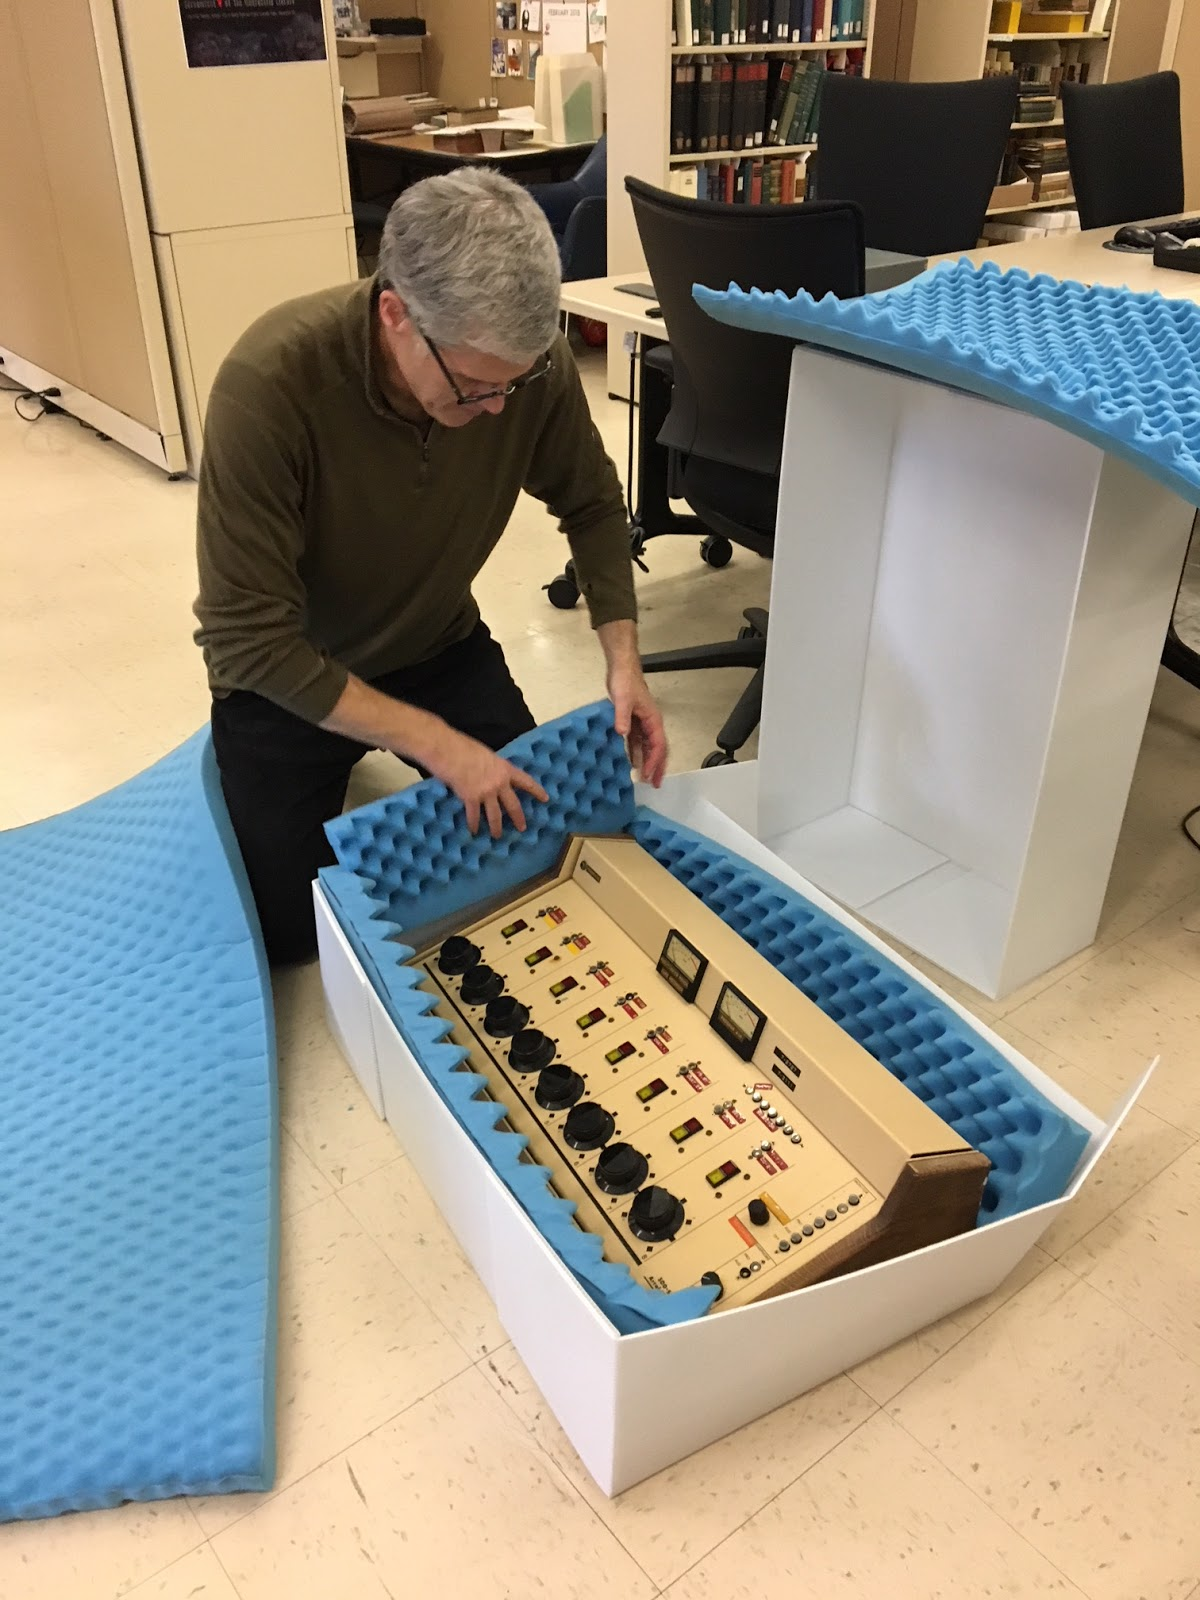 Archivist kneeling over a large box with the soundboard inside.